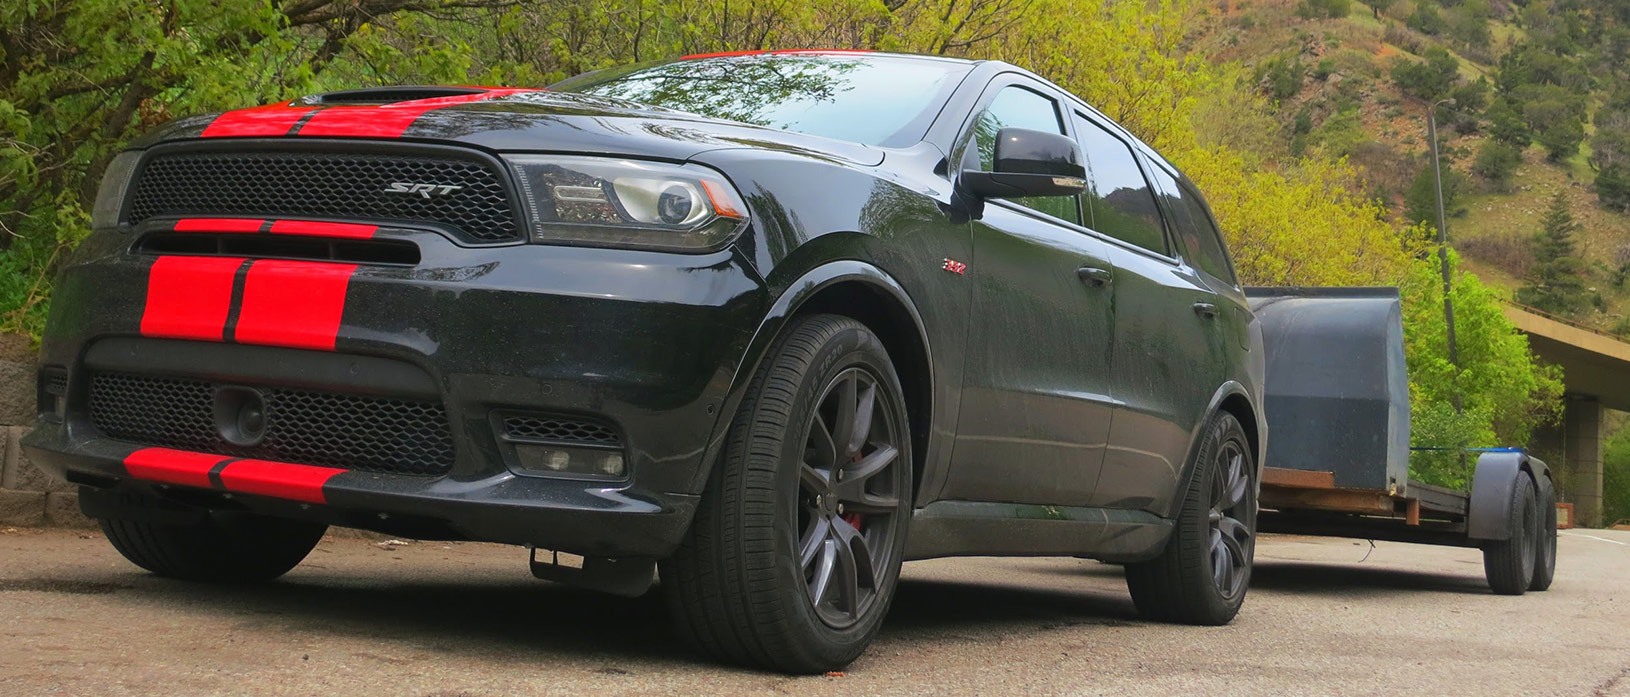 Dodge Durango SRT front right view low to the ground pulling a trailer.